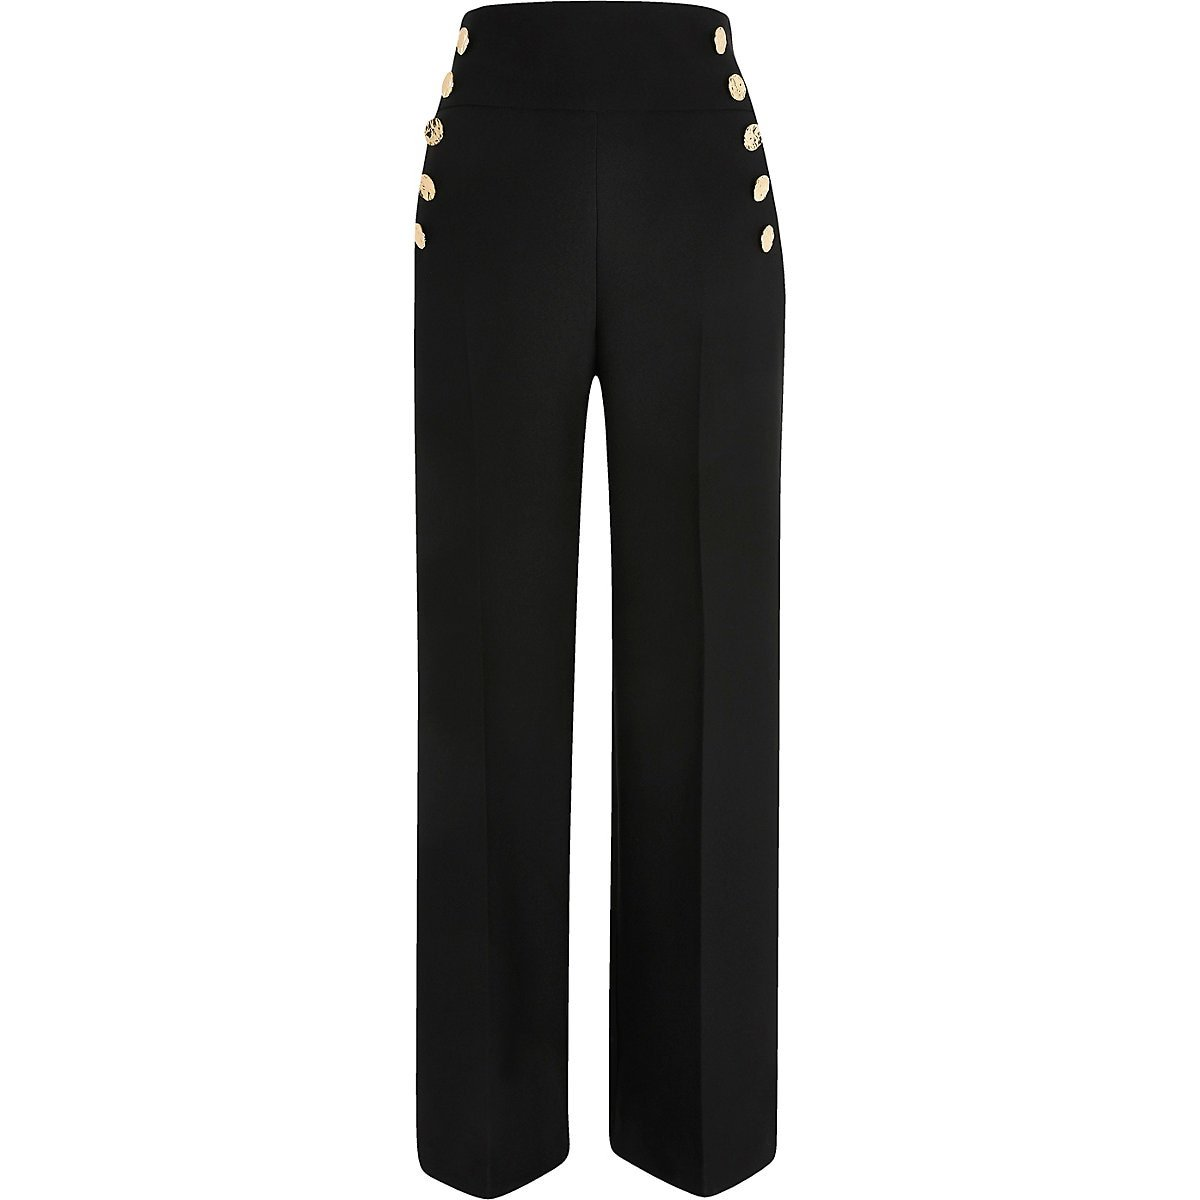 Black button wide leg pants - Wide Leg Pants - Pants - women